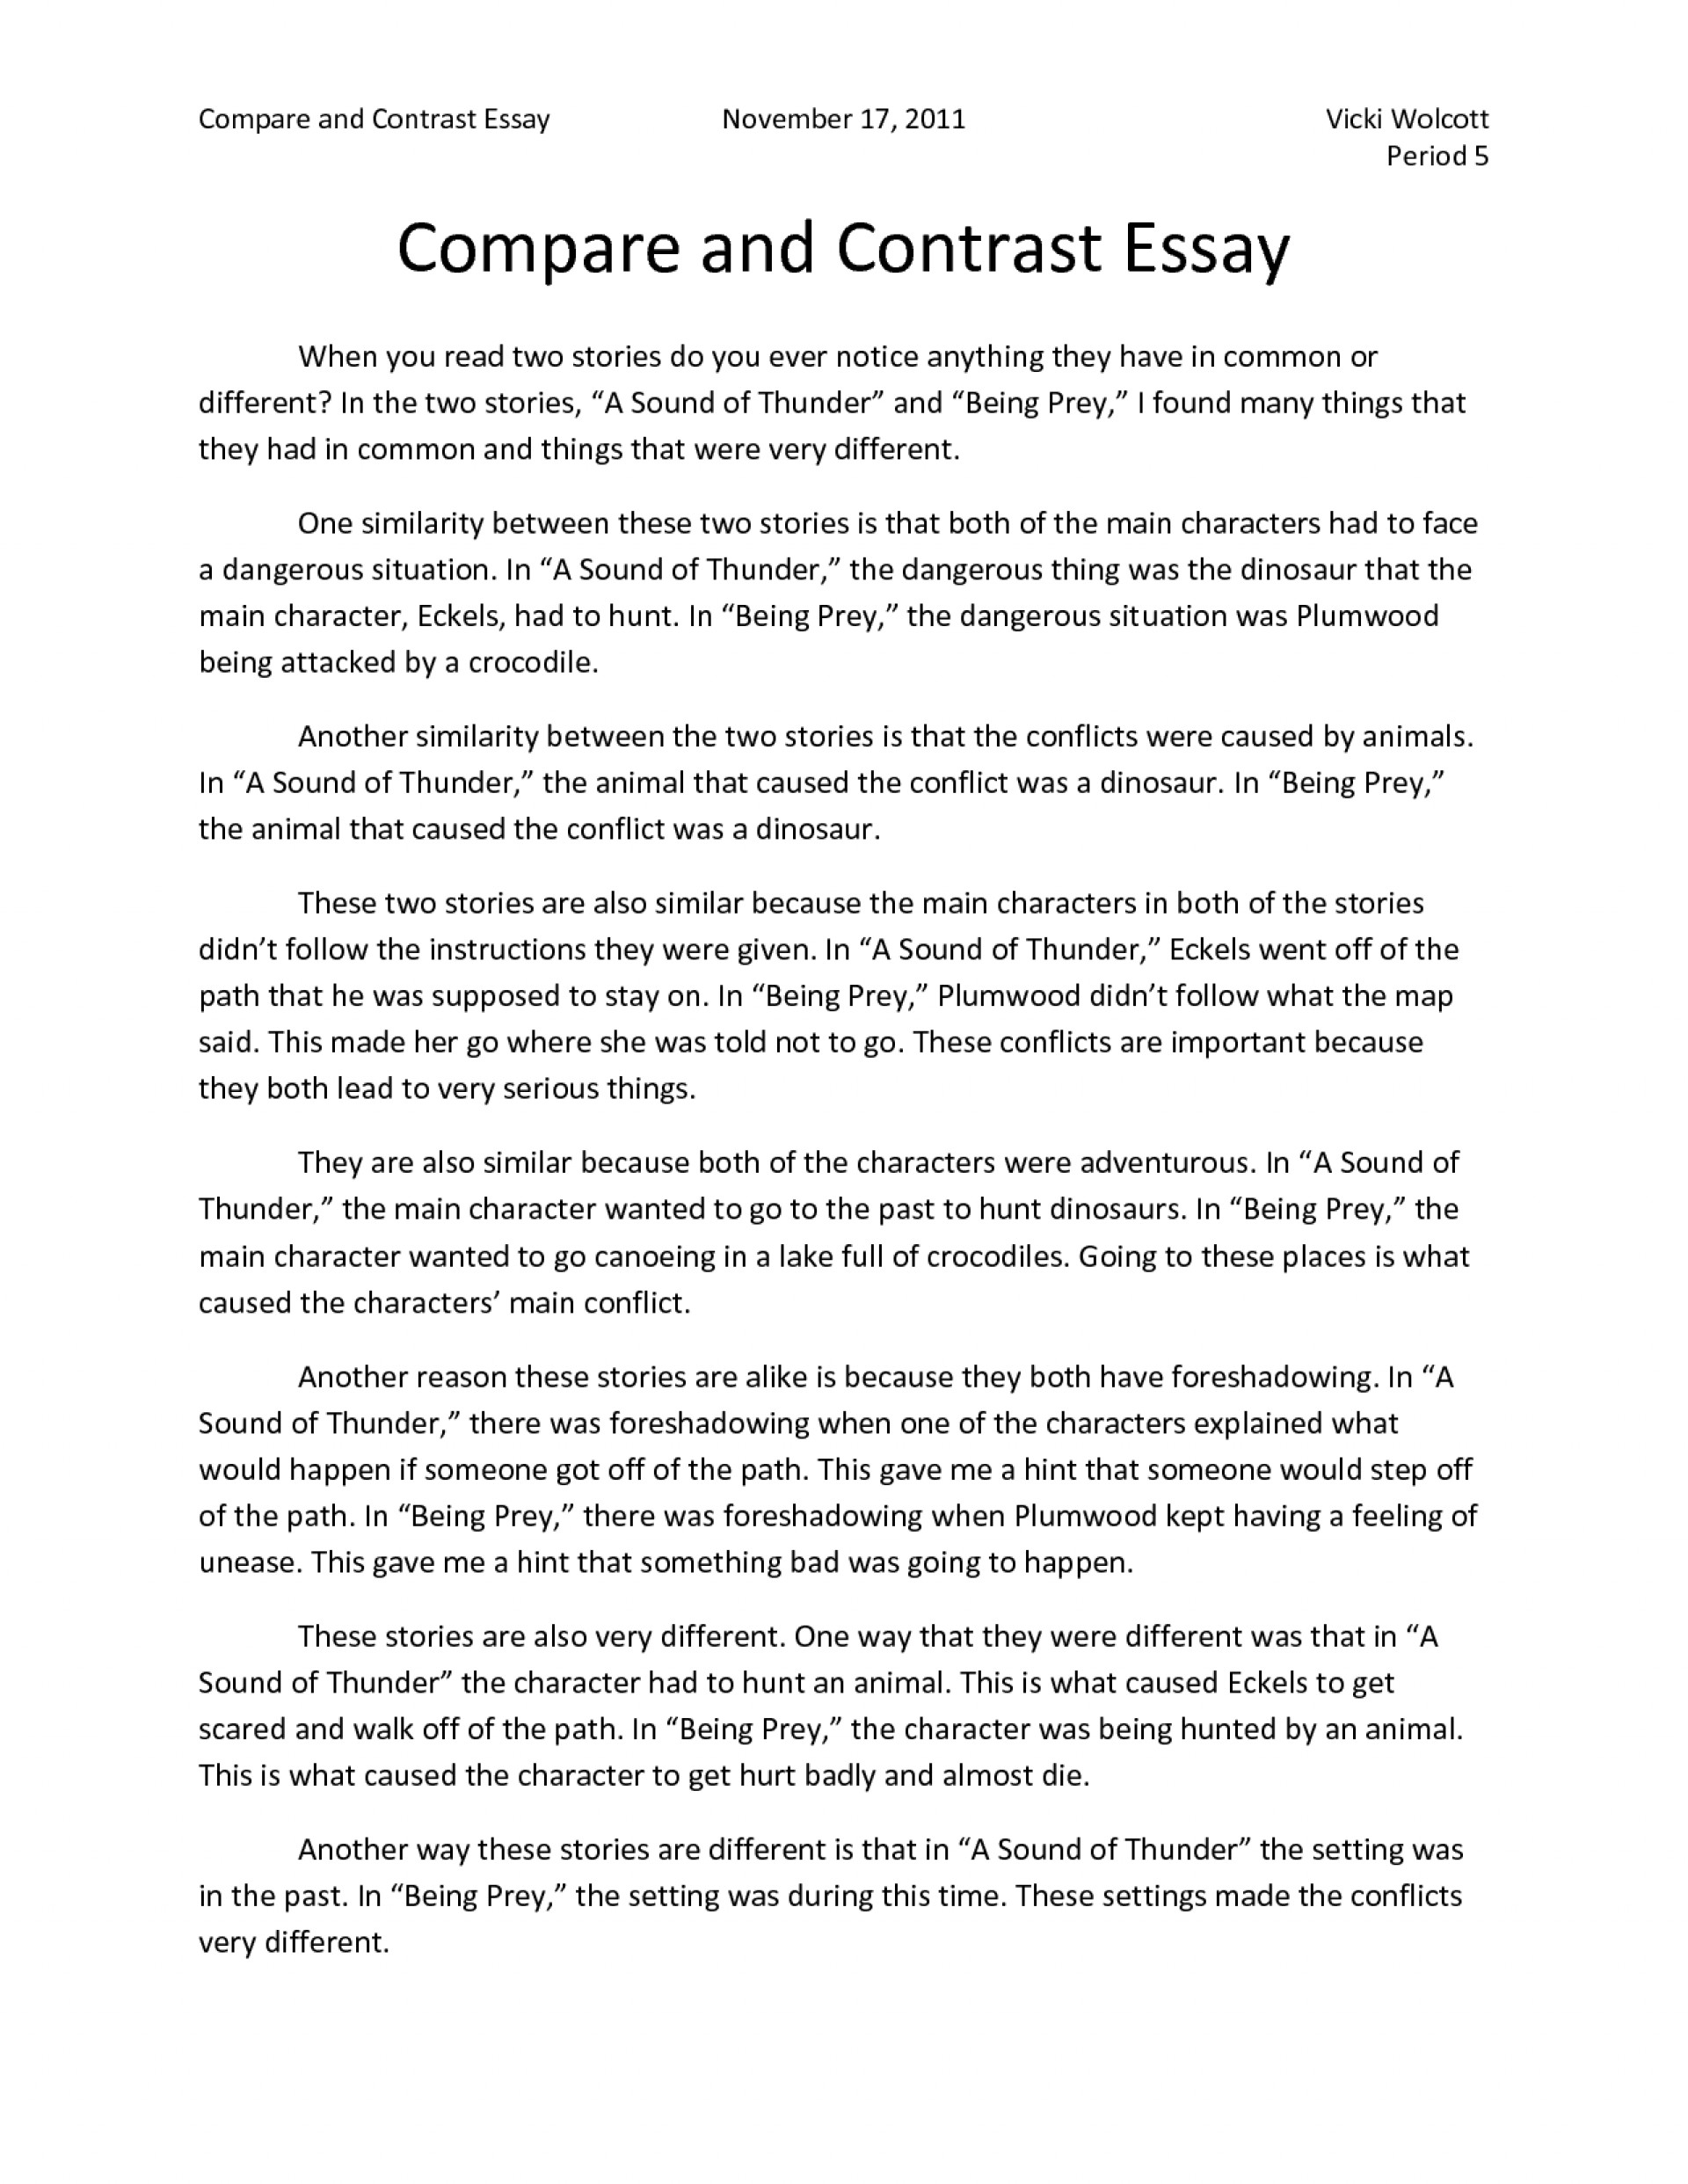 004 Essay Example Compare And Contrast Essays Perfect Introduction How To Write College Awful Free Examples For Topics Middle School 1920